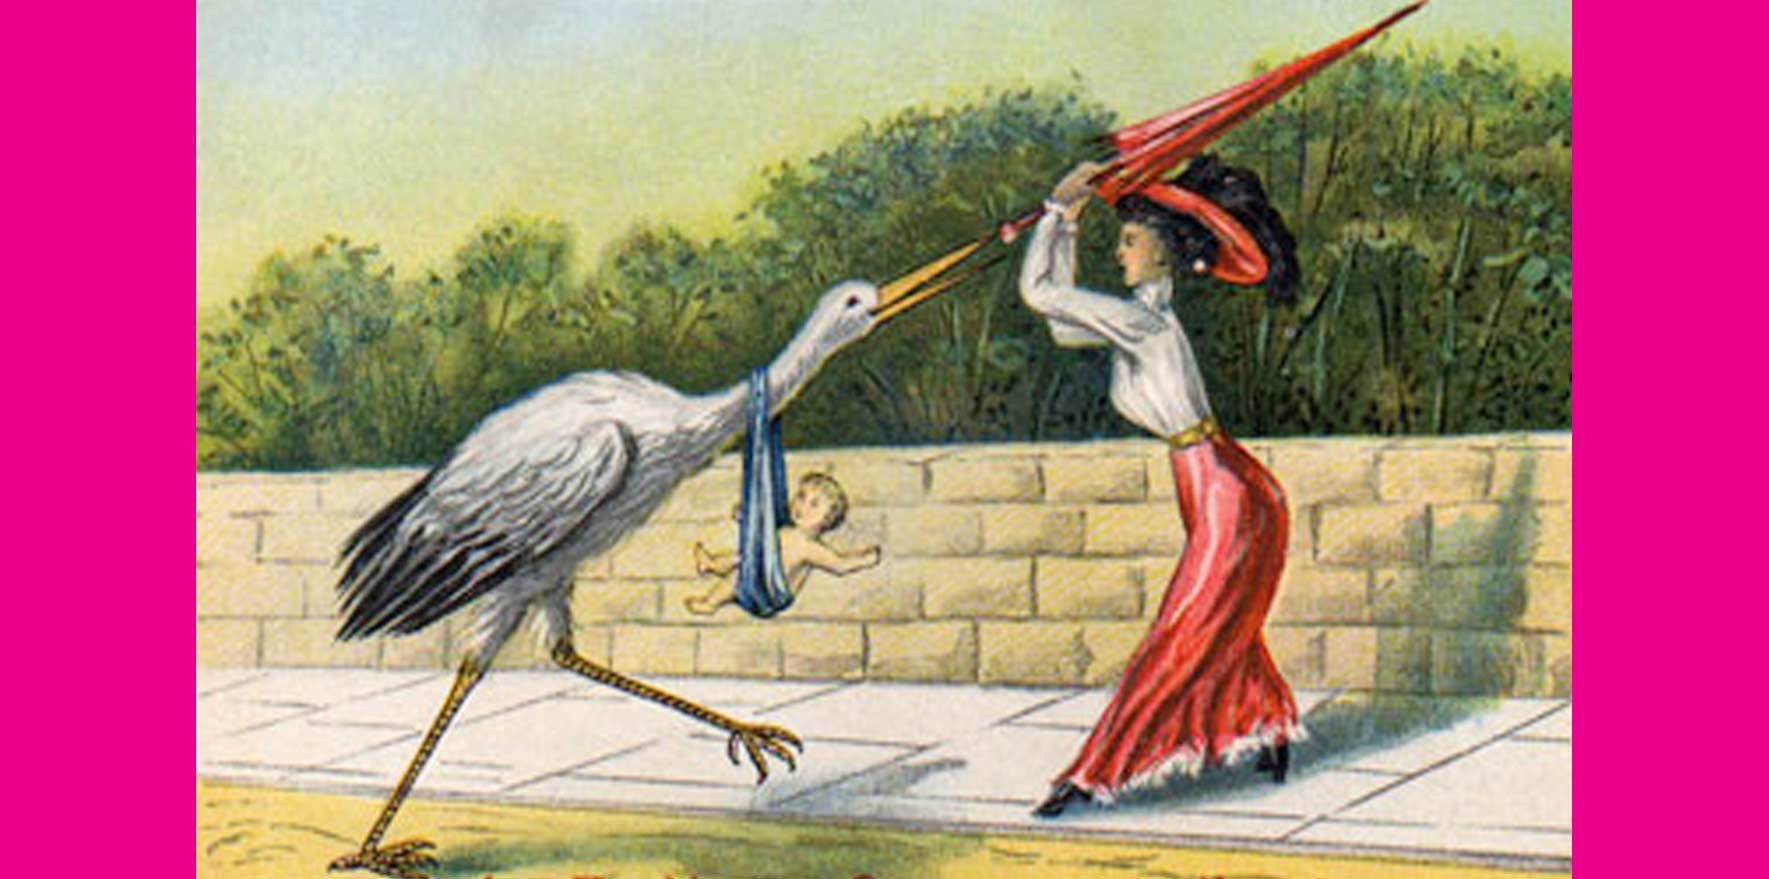 The Stork Delivers: Marketing Strategies at their Finest